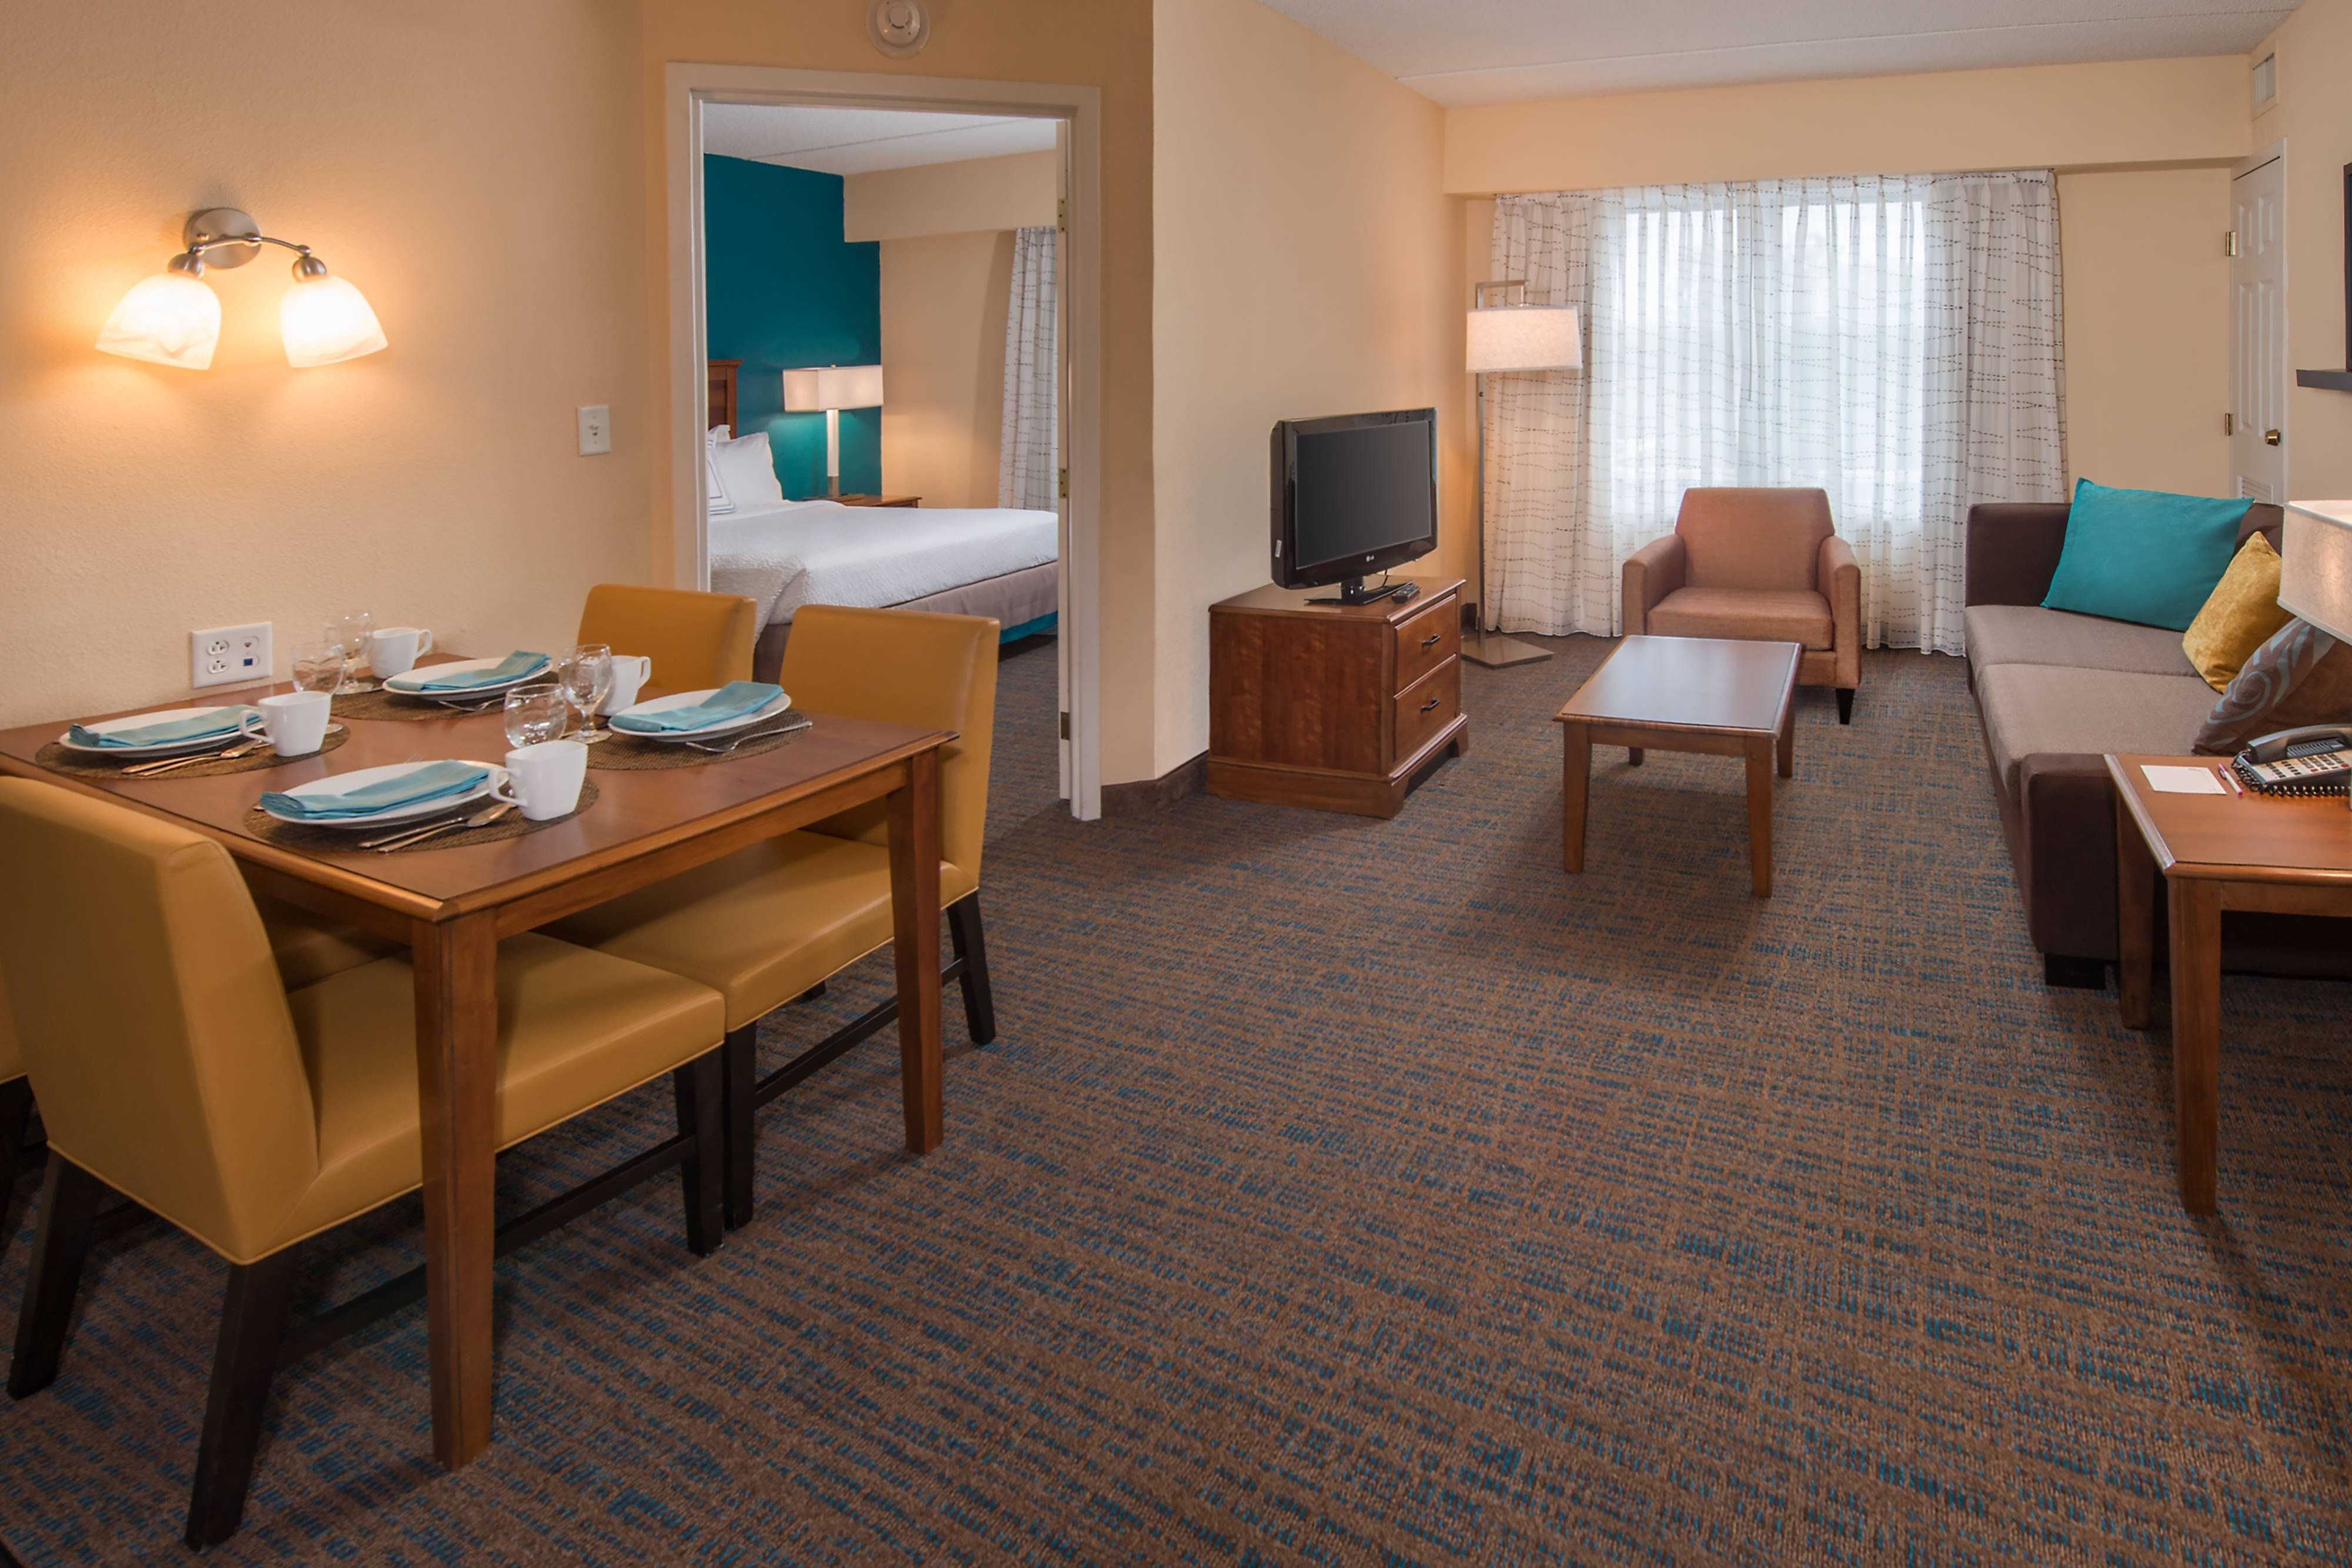 Newly renovated suites in chesapeake chesapeake hotel suites - 2 bedroom suites in chesapeake va ...